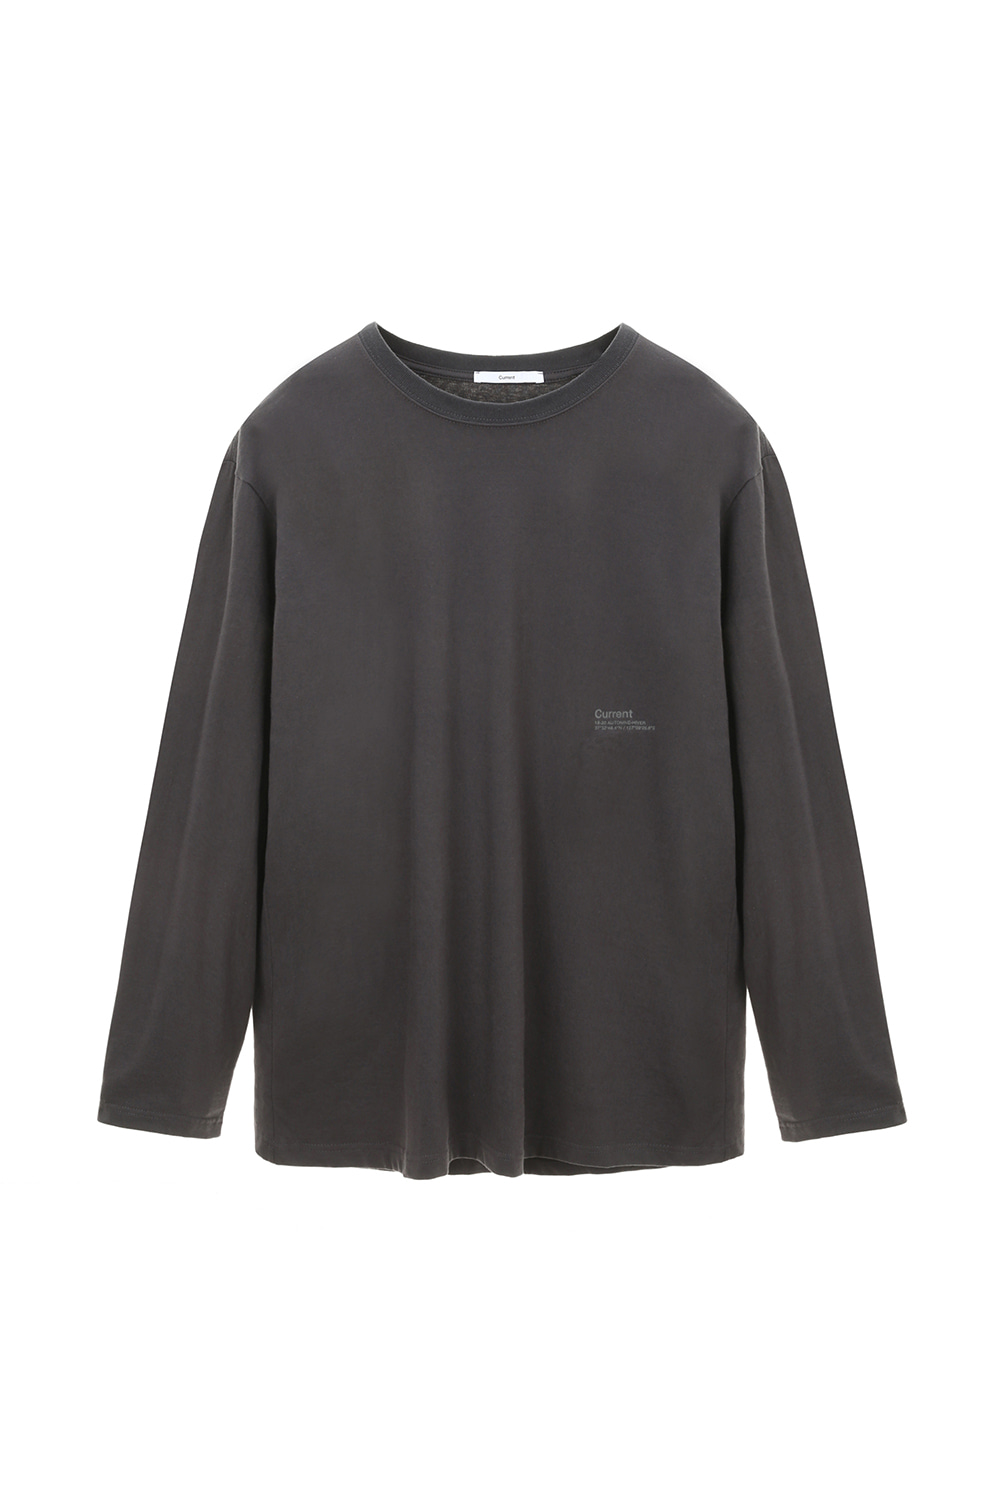 Logo Long Sleeve Men [Charcoal Gray]